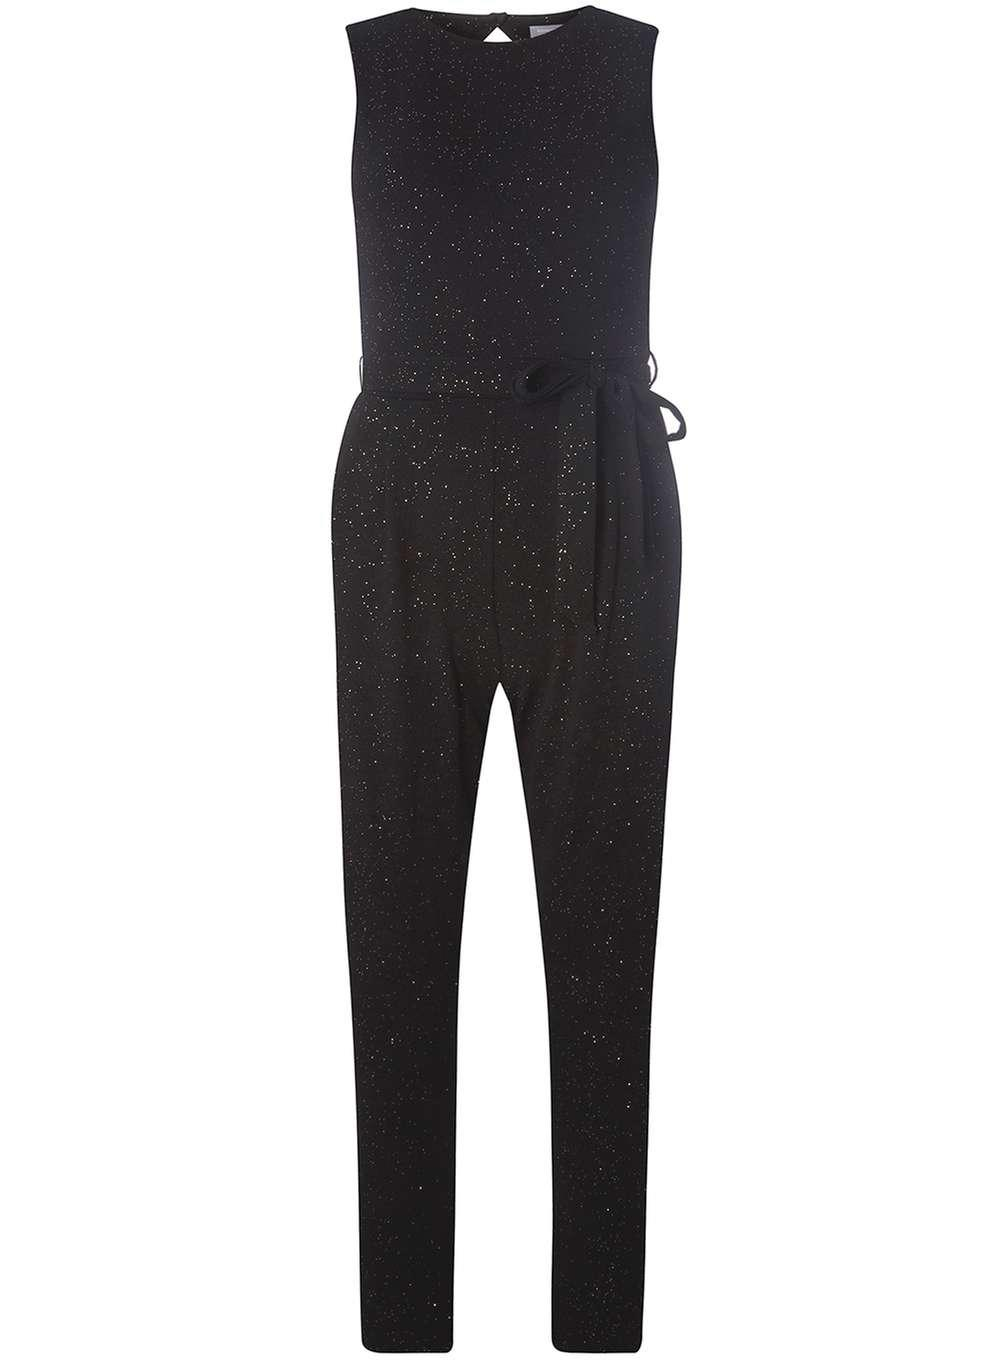 0dd70a5b543 Lyst - Dorothy Perkins Petite Black Sparkle Jumpsuit in Black